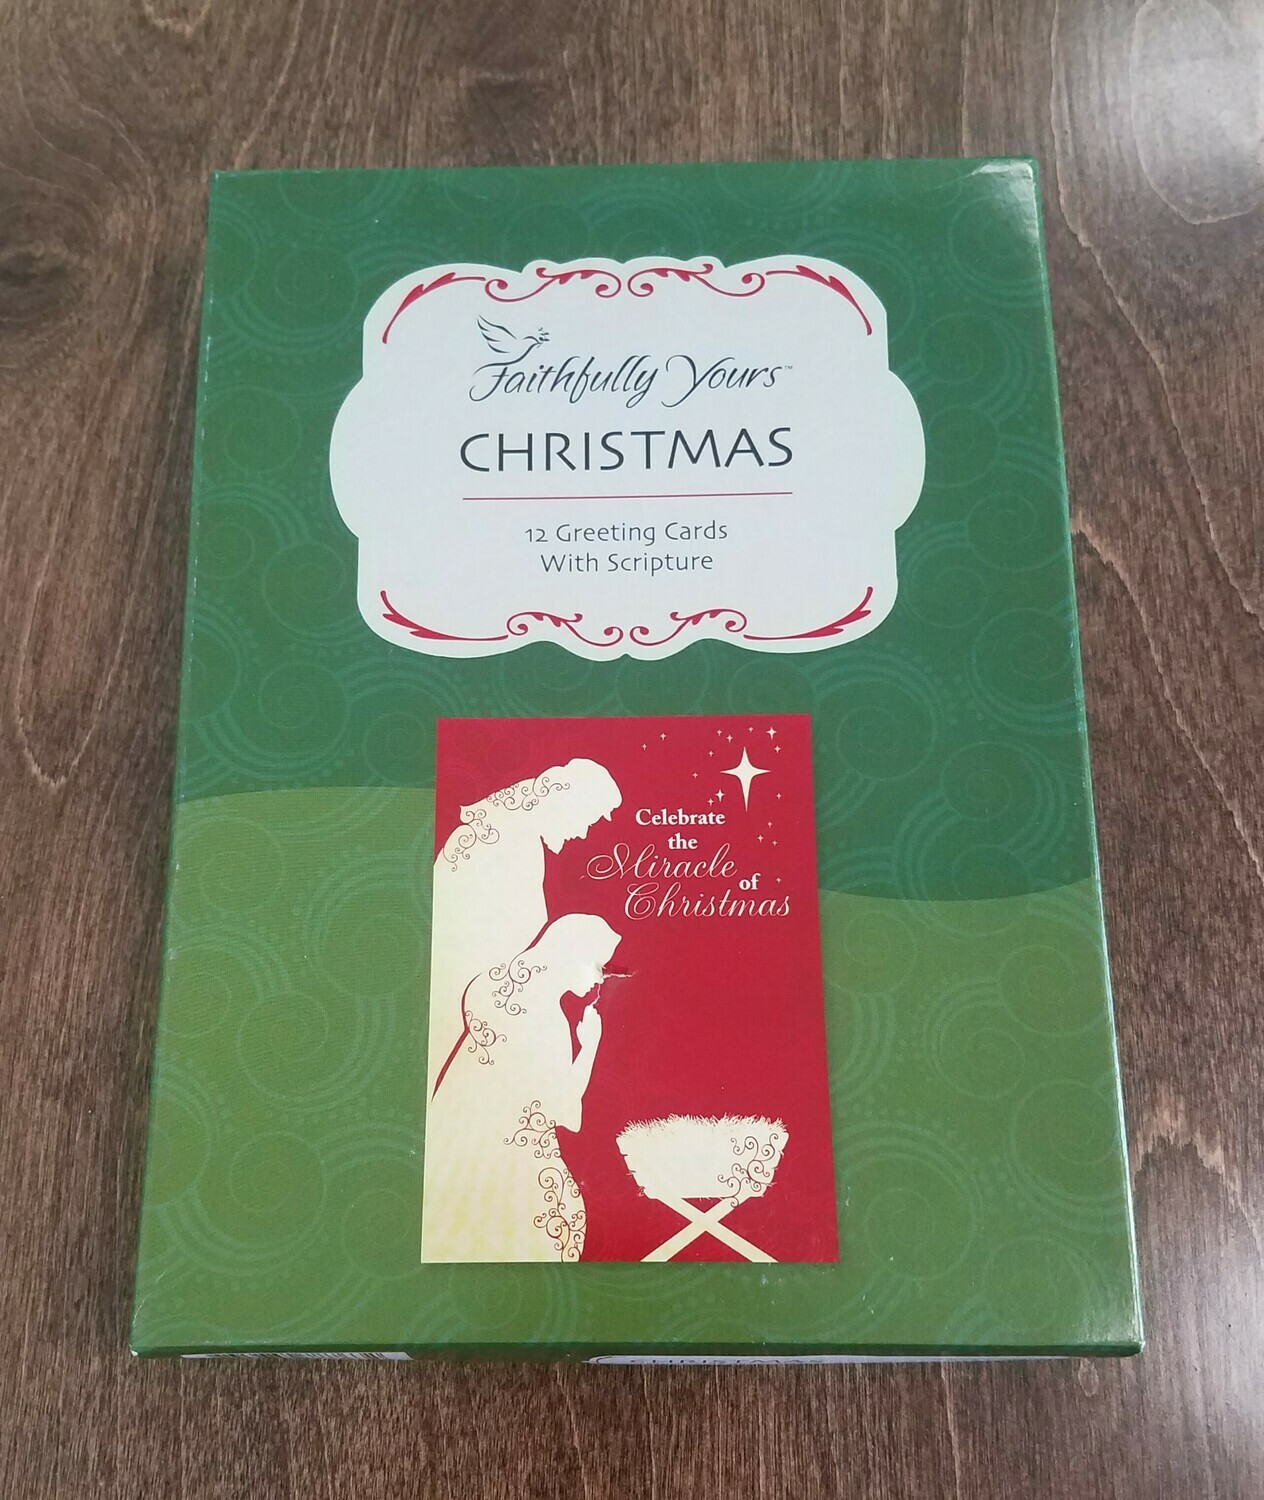 Faithfully Yours Christmas Boxed Cards